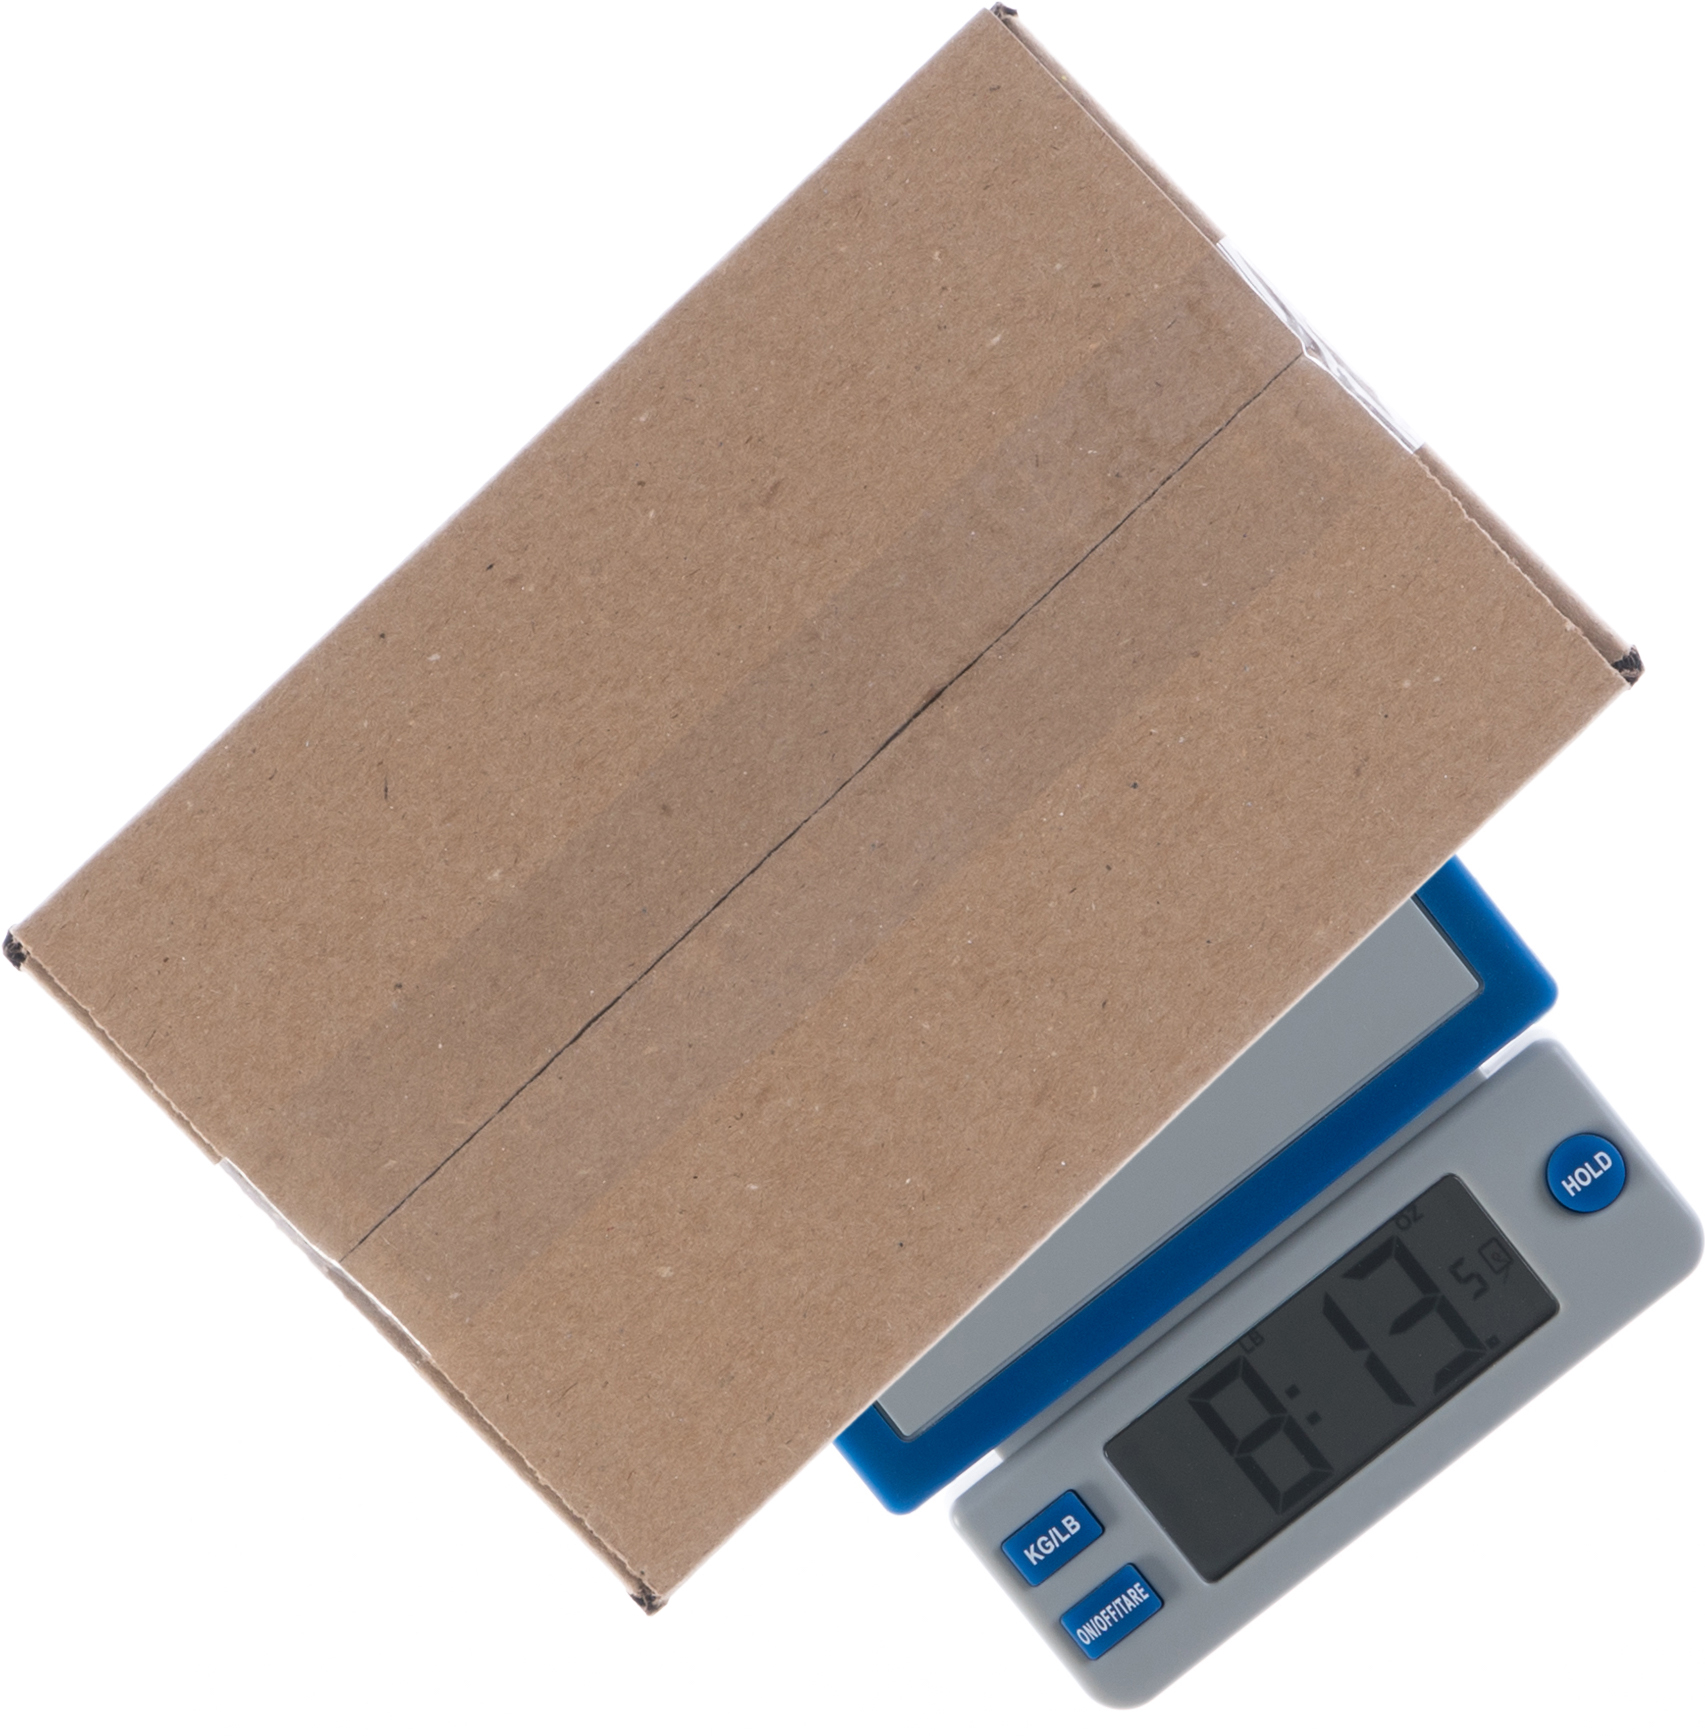 Cardboard box on a postage scale